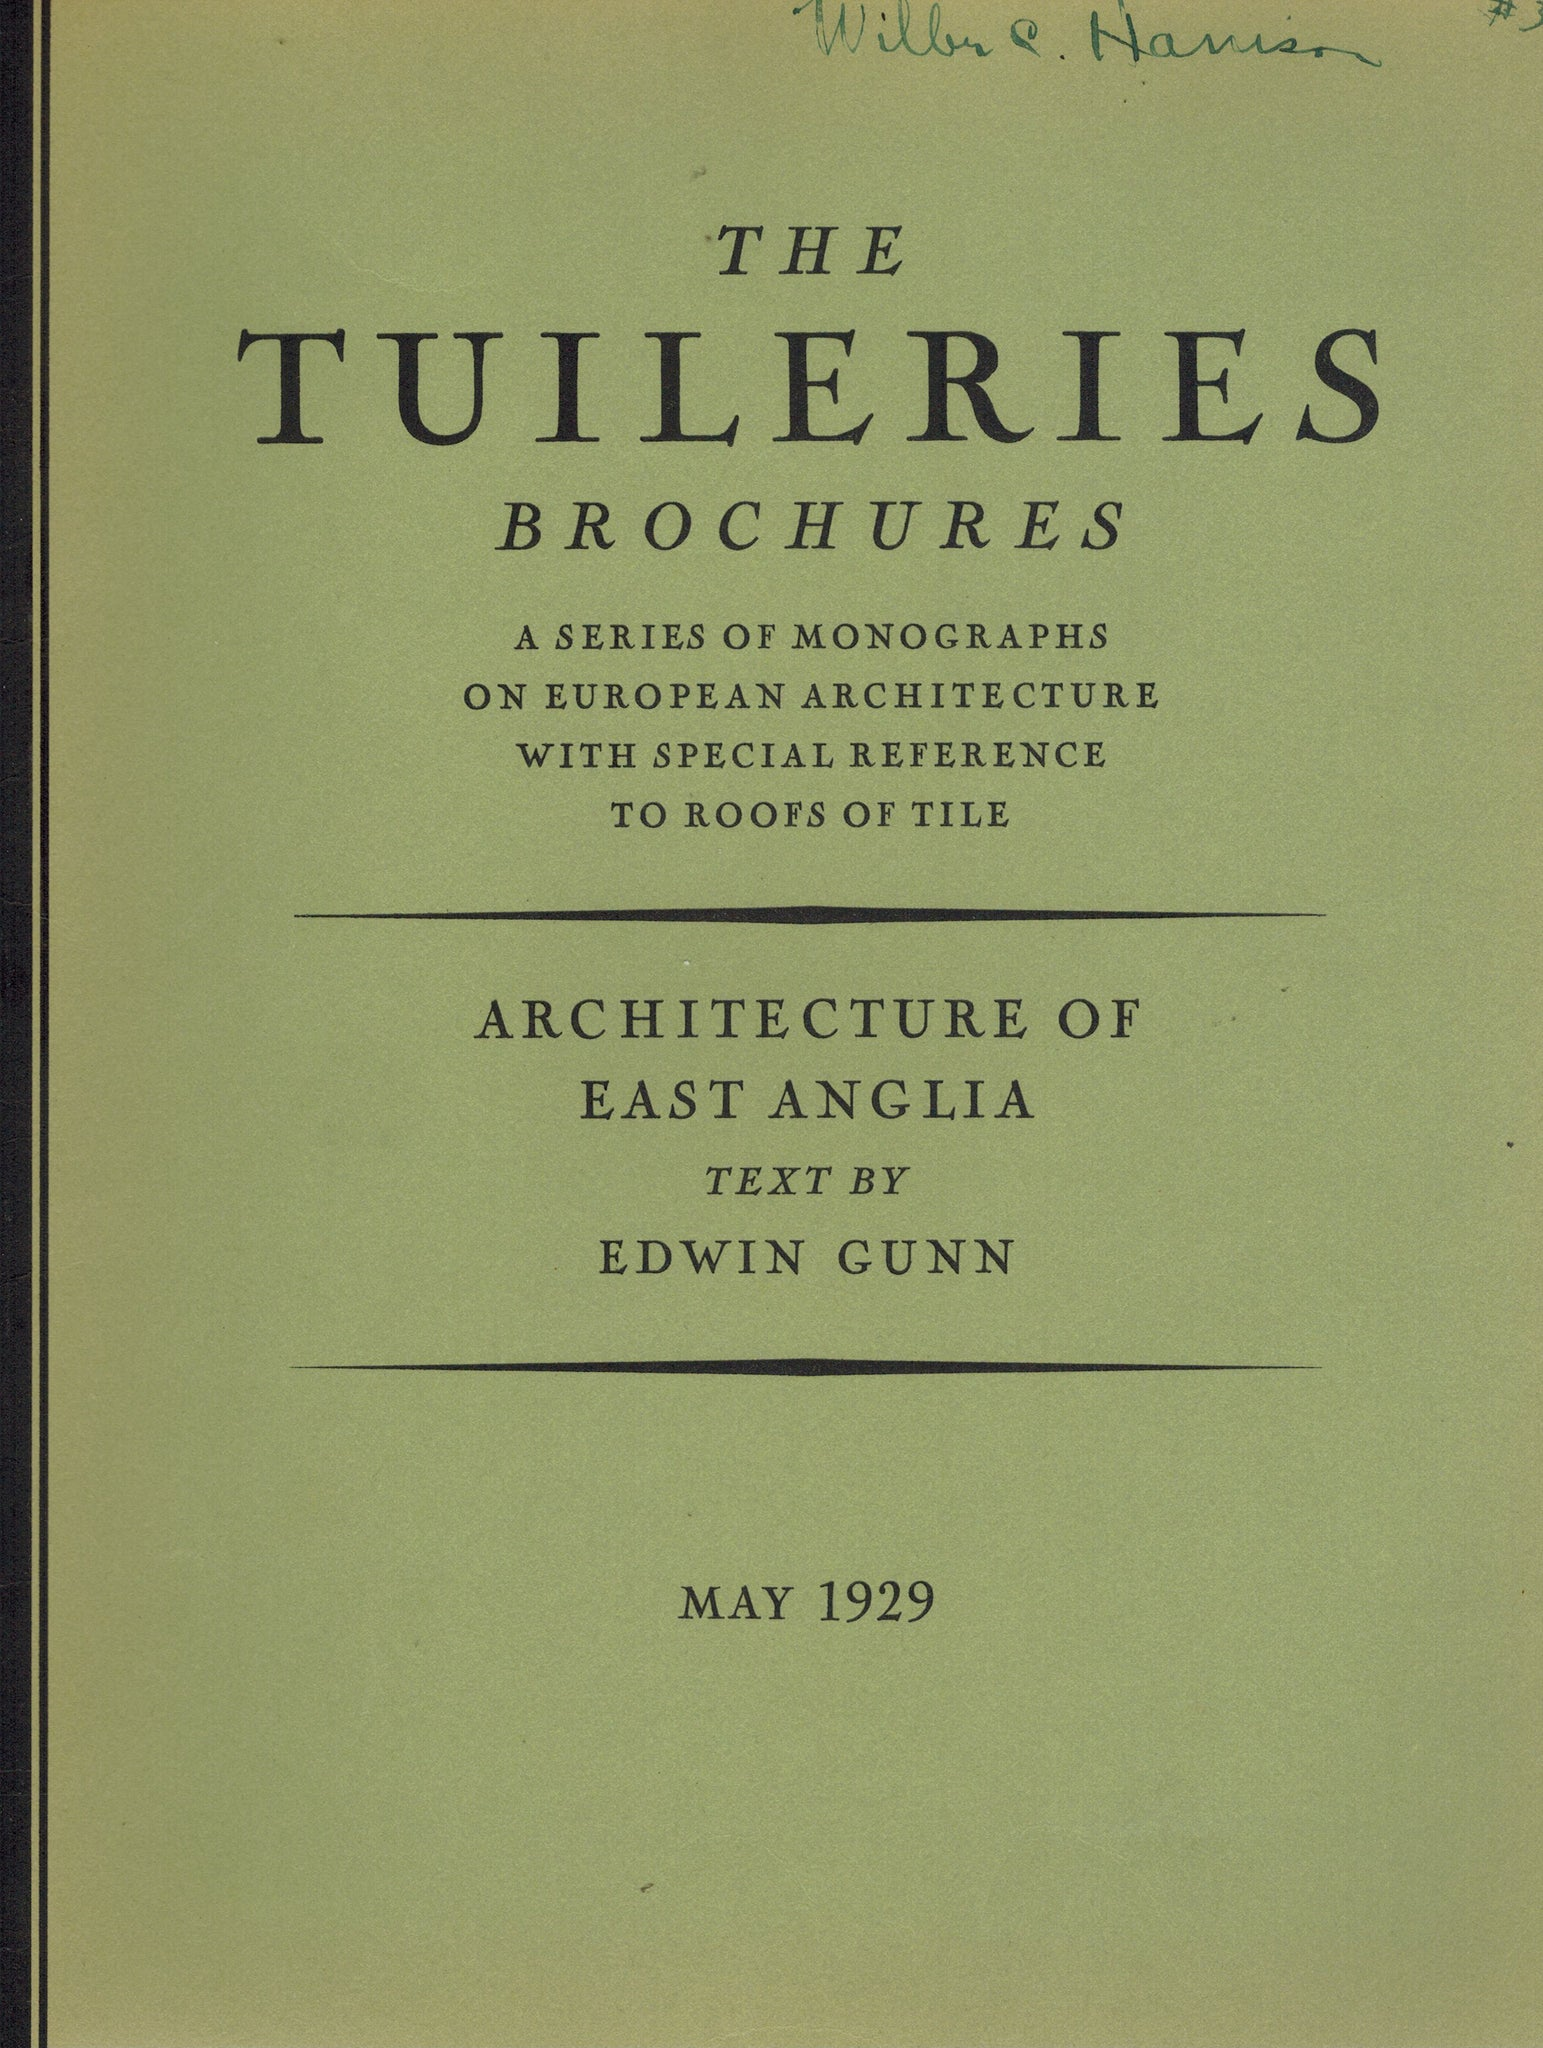 THE TUILERIES BROCHURES - ACHITECTURE OF EAST ANGLIA: MAY 1929 - books-new